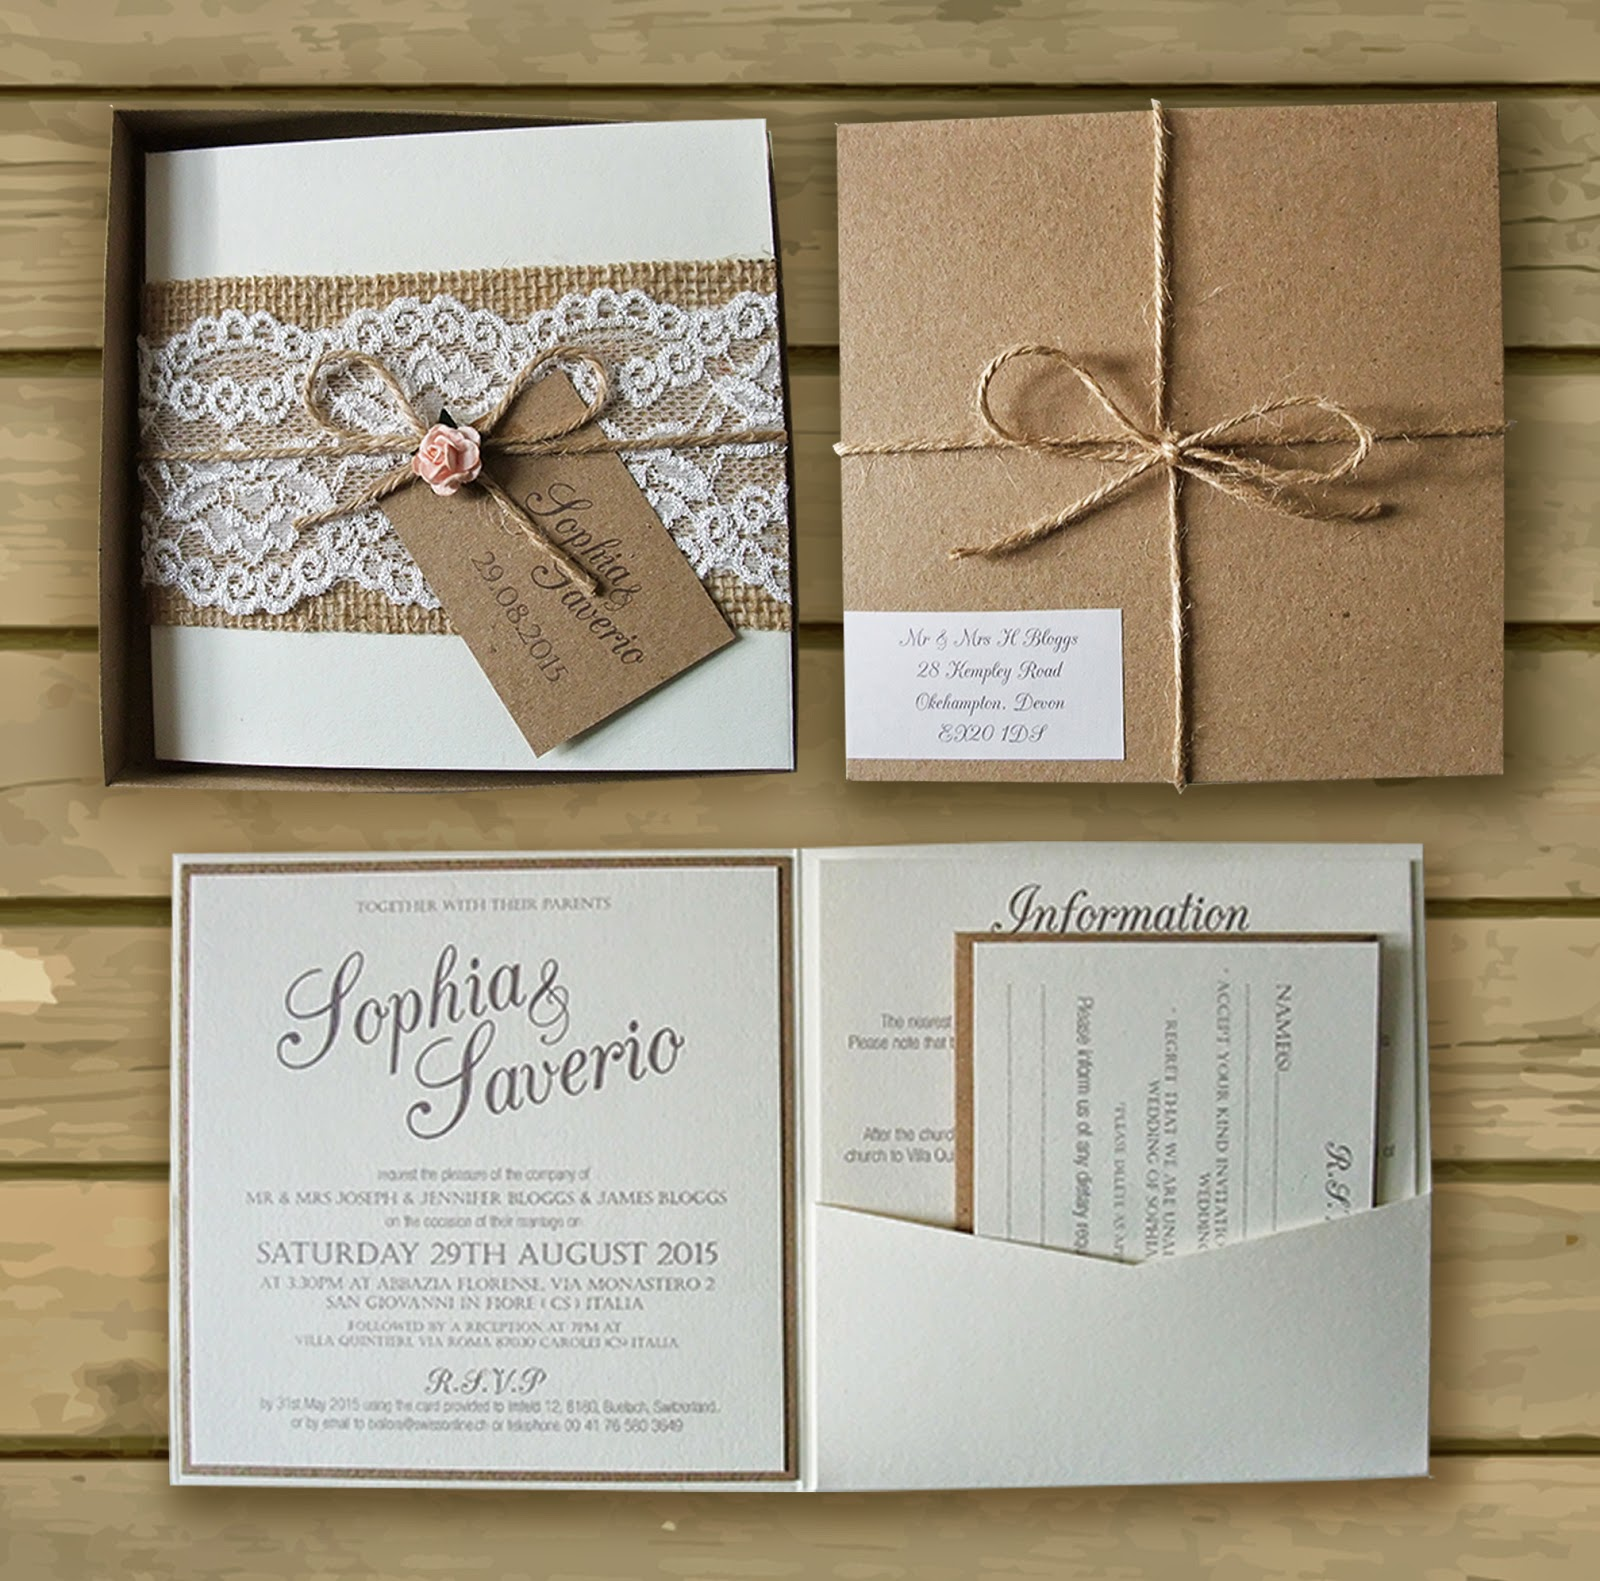 Bespoke Wedding Invitations: Knots And Kisses Wedding Stationery: Bespoke Boxed Kraft